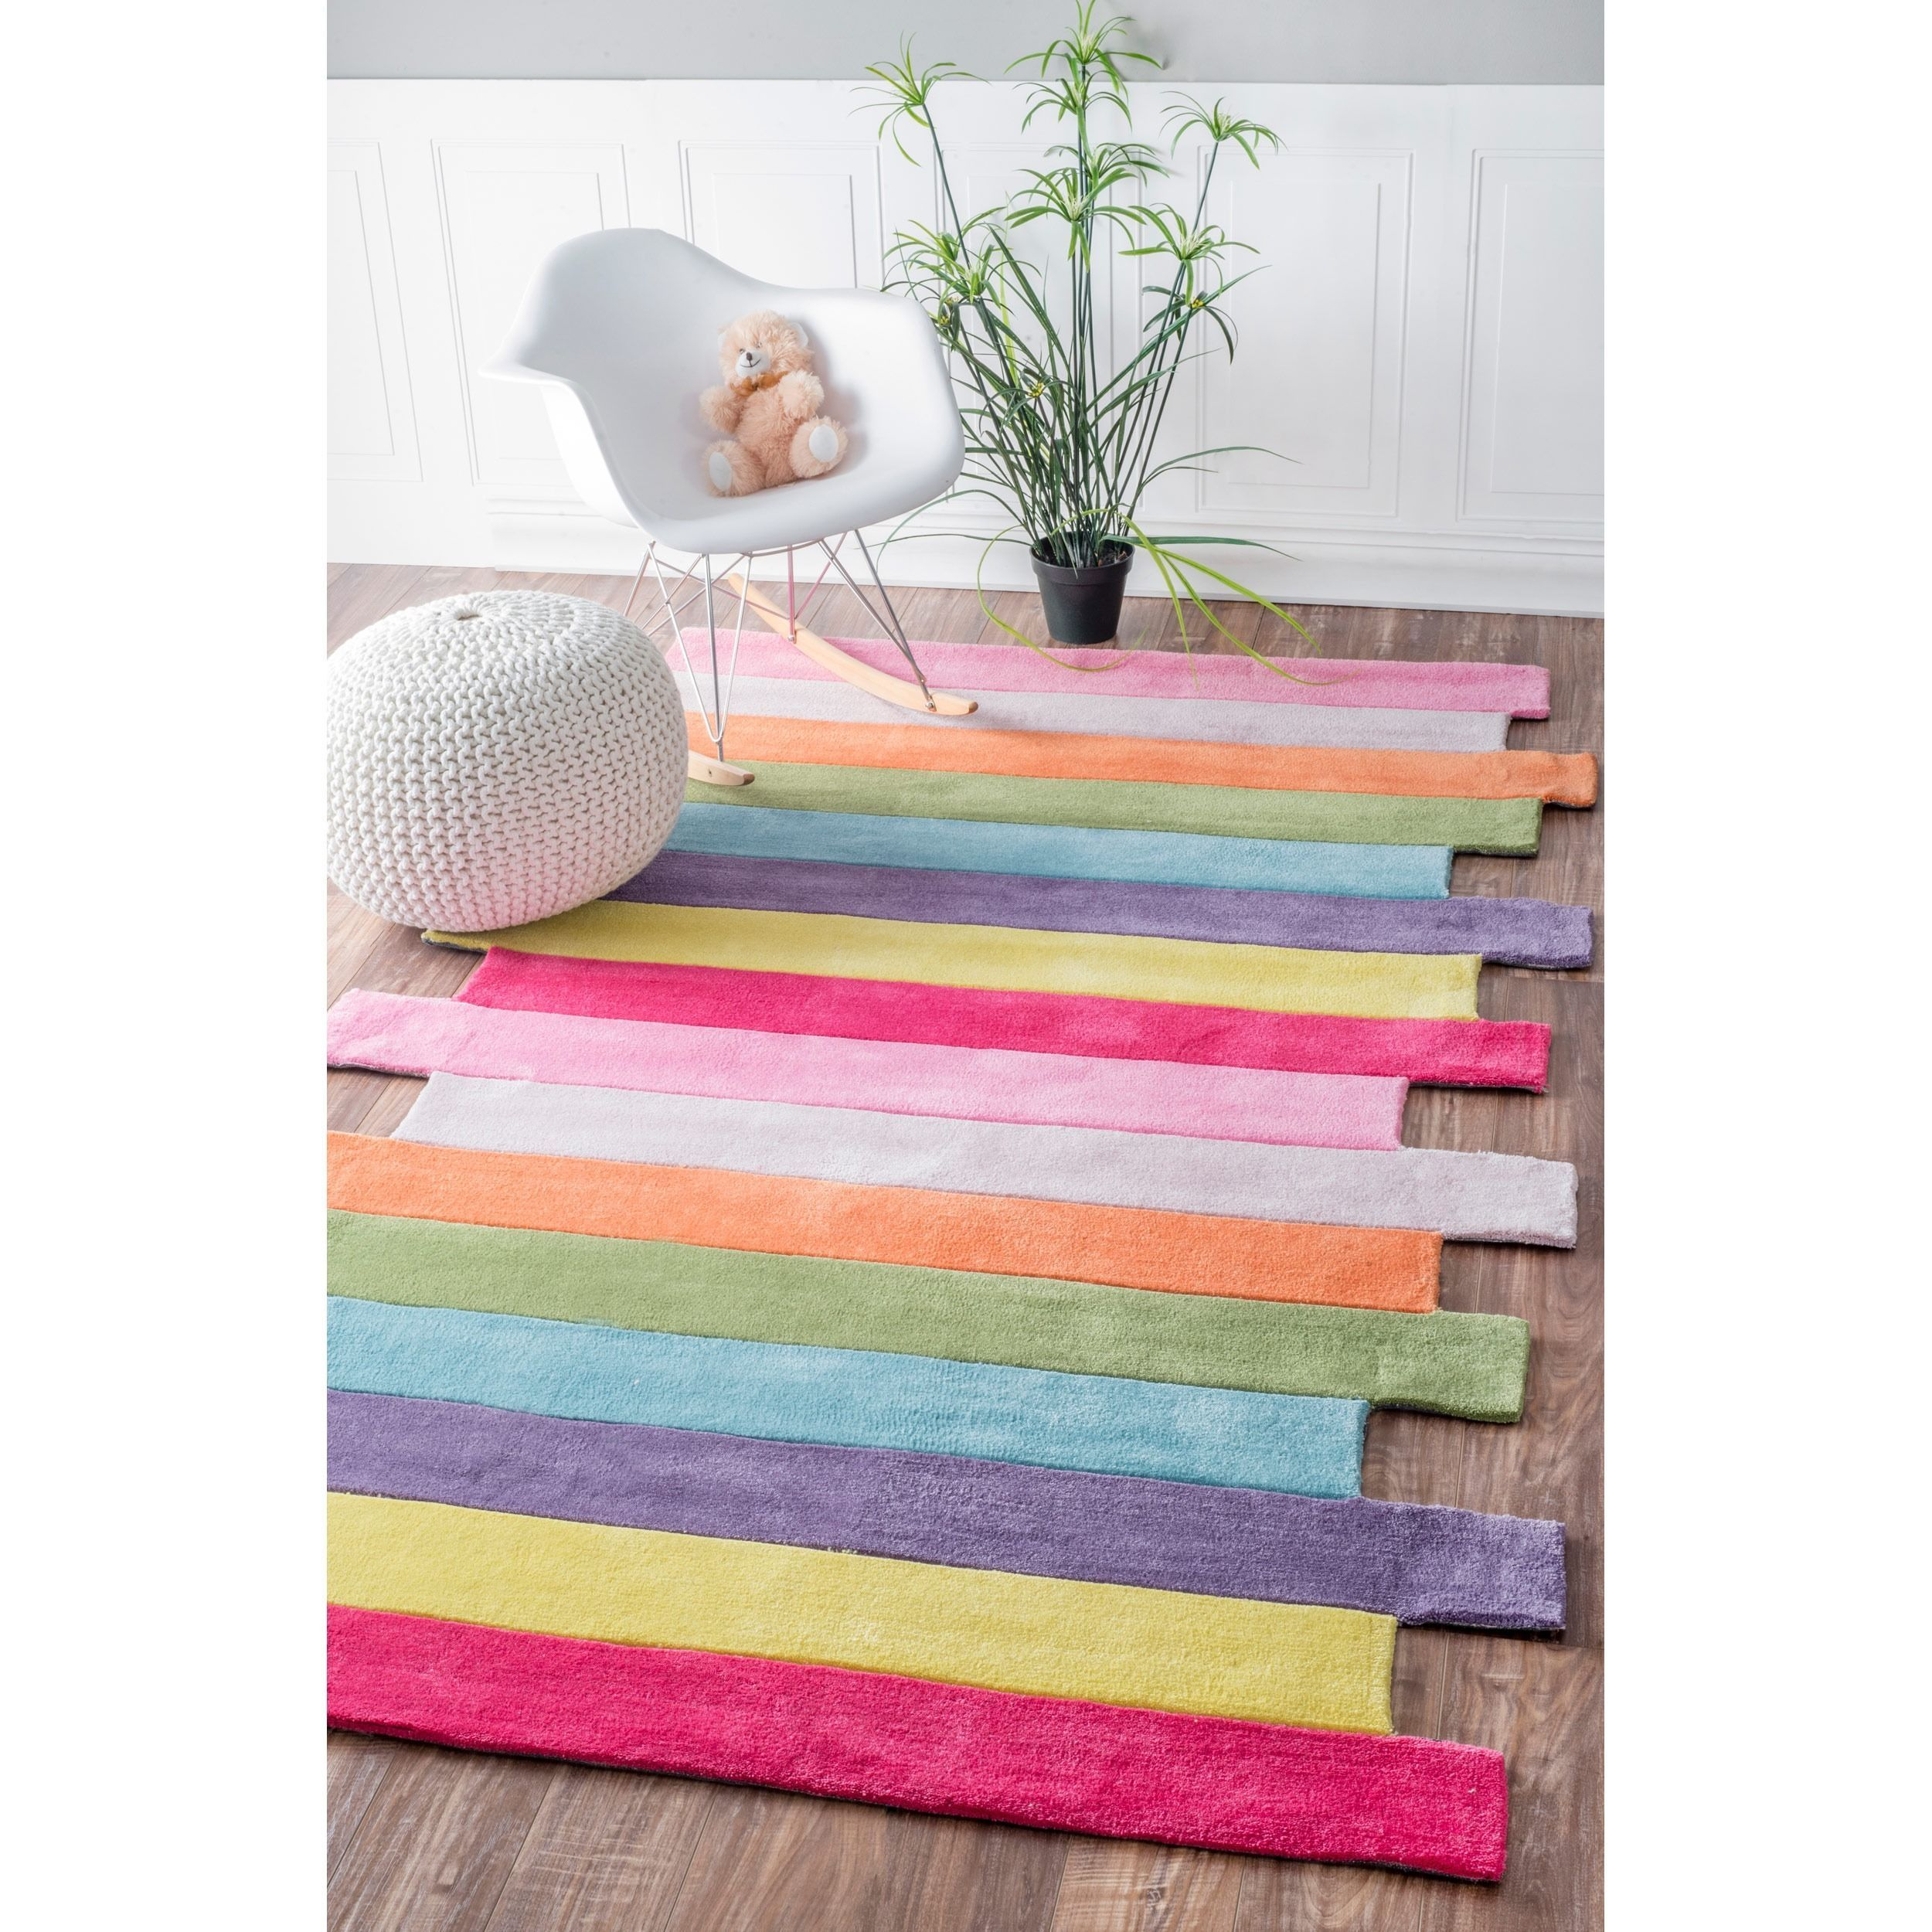 Children's Floor Rugs Nuloom Handmade Kids Stripes Multi Rug 5 X 8 Pink Size 5